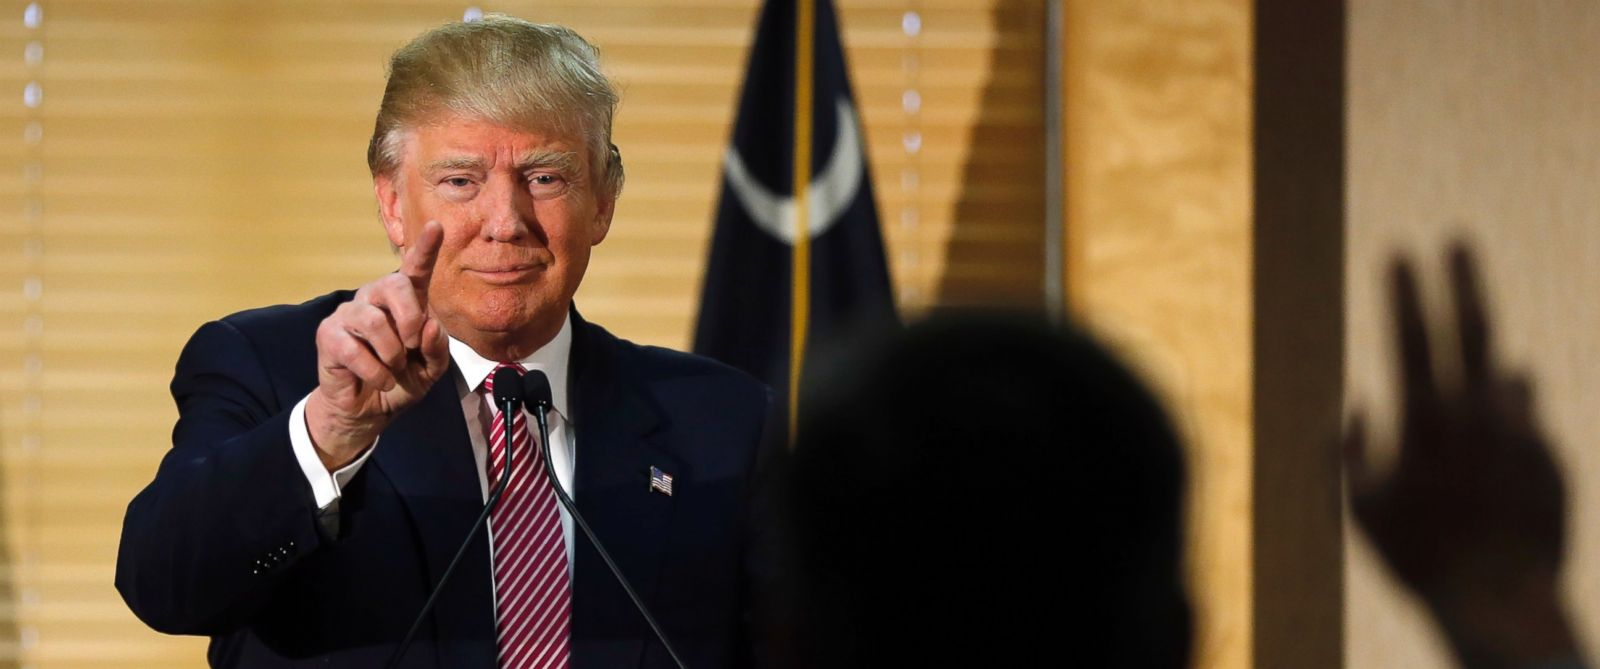 PHOTO: Republican presidential candidate Donald Trump calls on a member of the media during a news conference, Feb. 15, 2016, in Hanahan, South Carolina.